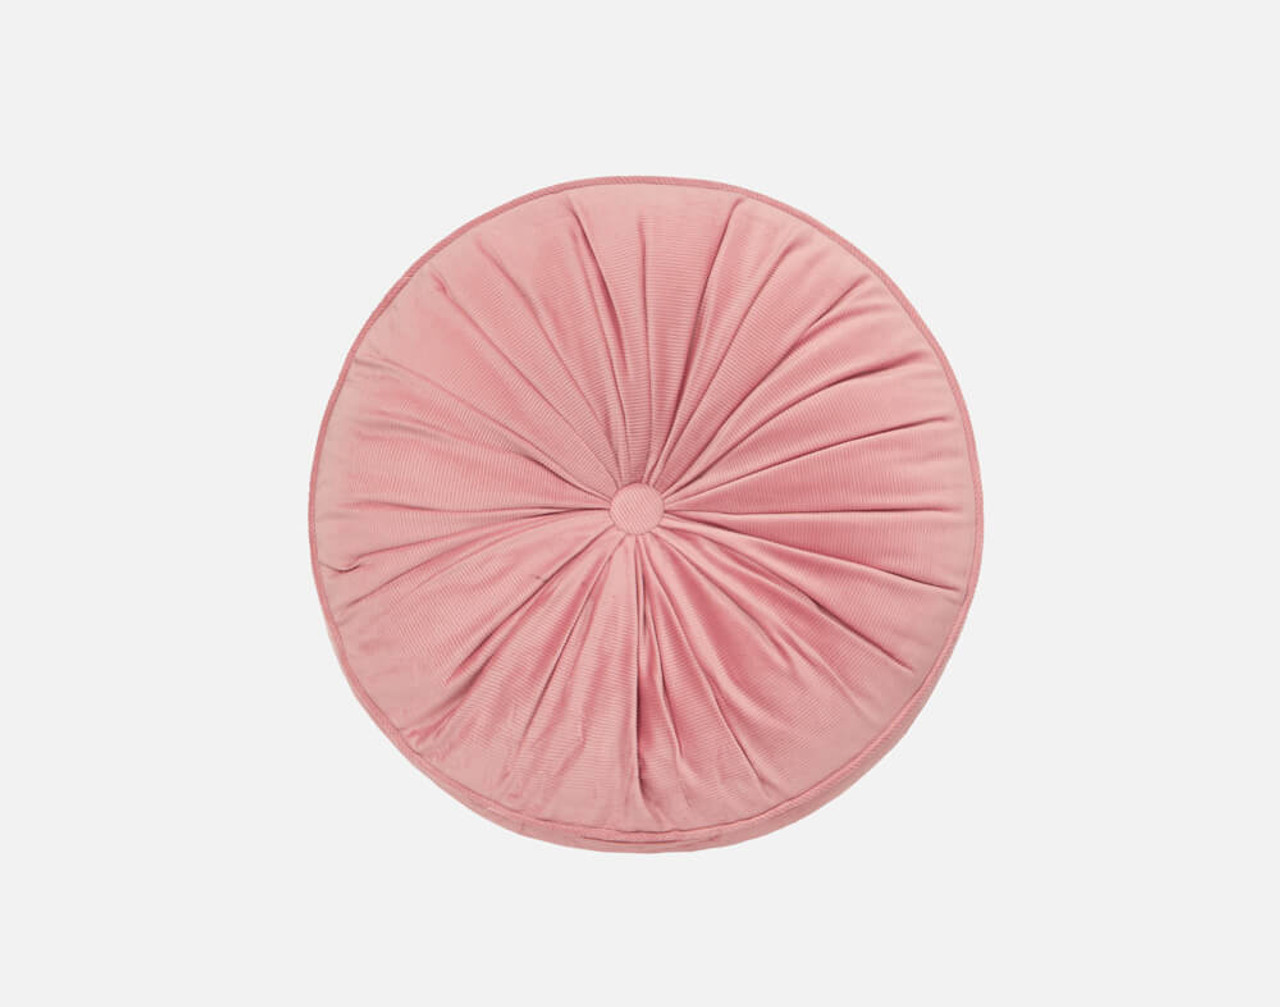 Round Corduroy Pillow in Blush, a cheerful pink.